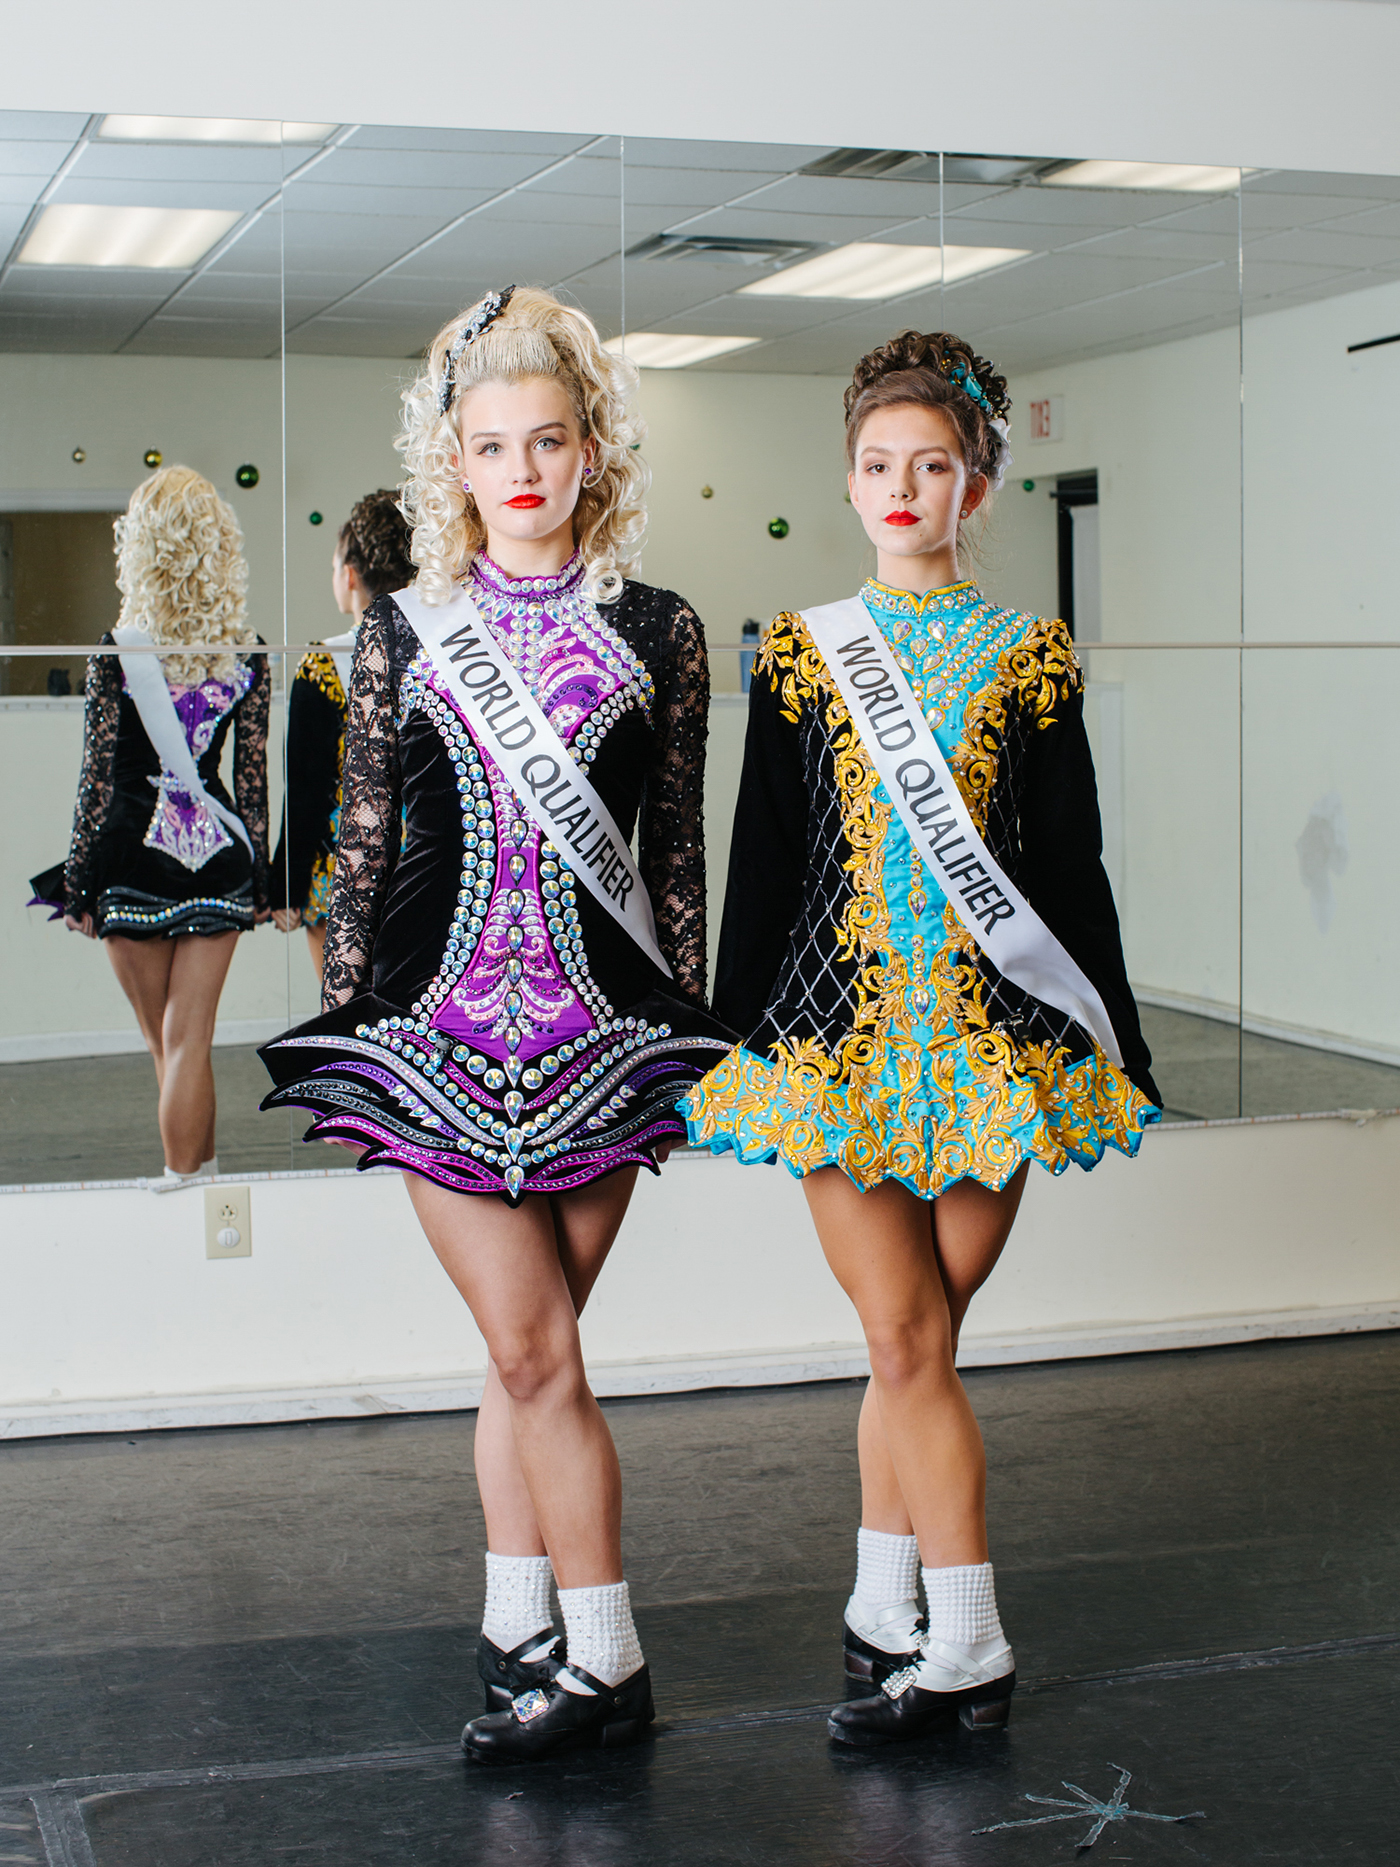 Portrait photography of two dancers standing side-by-side.